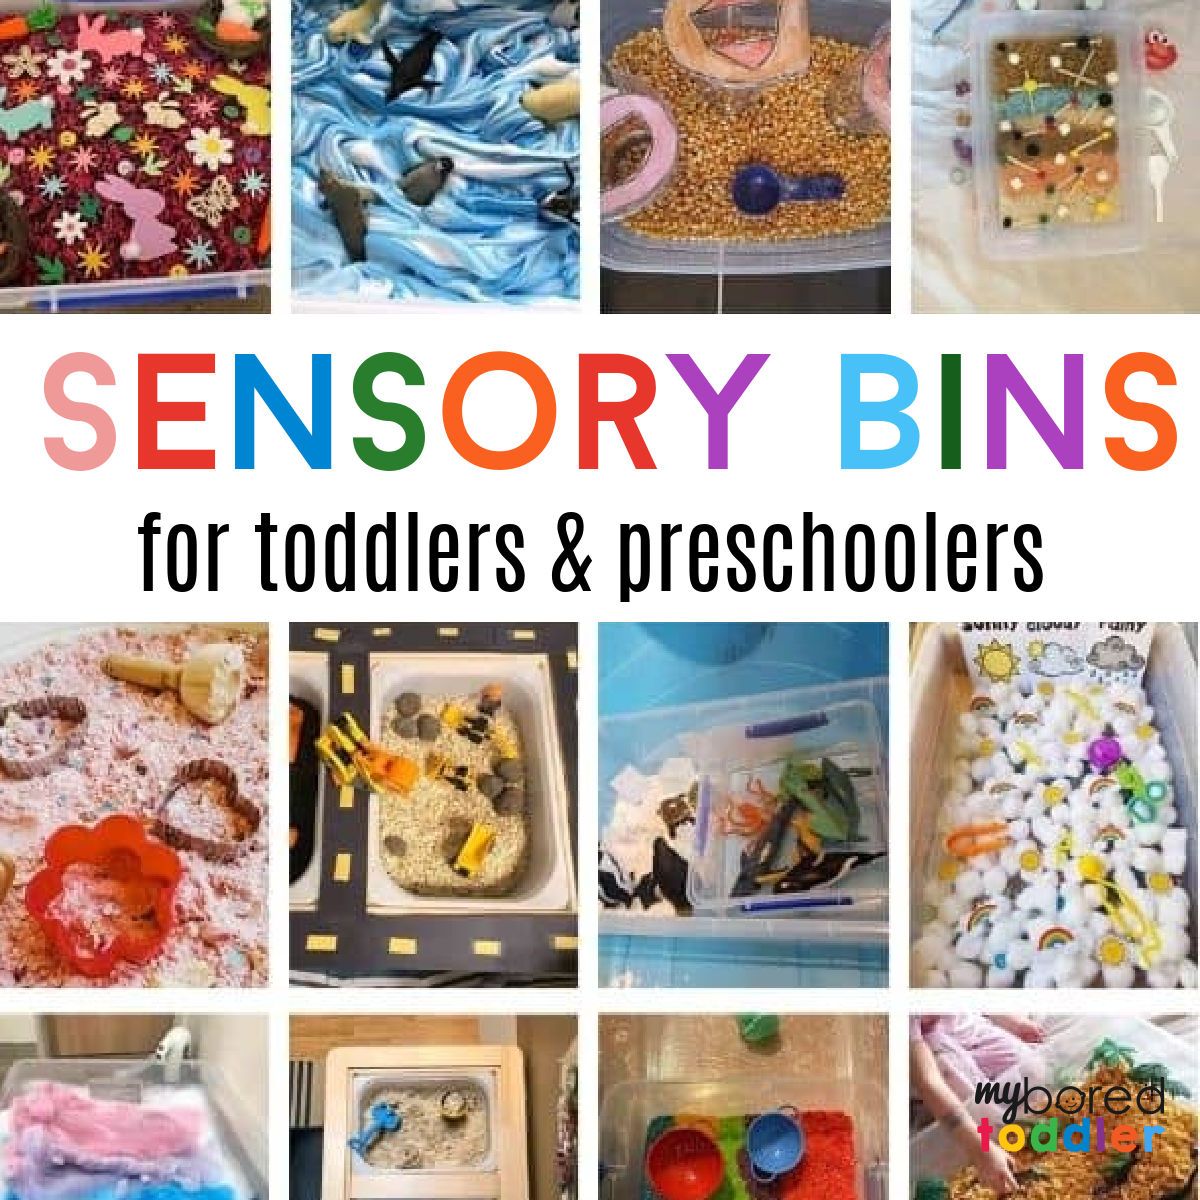 sensory bins for toddlers and preschoolers feature